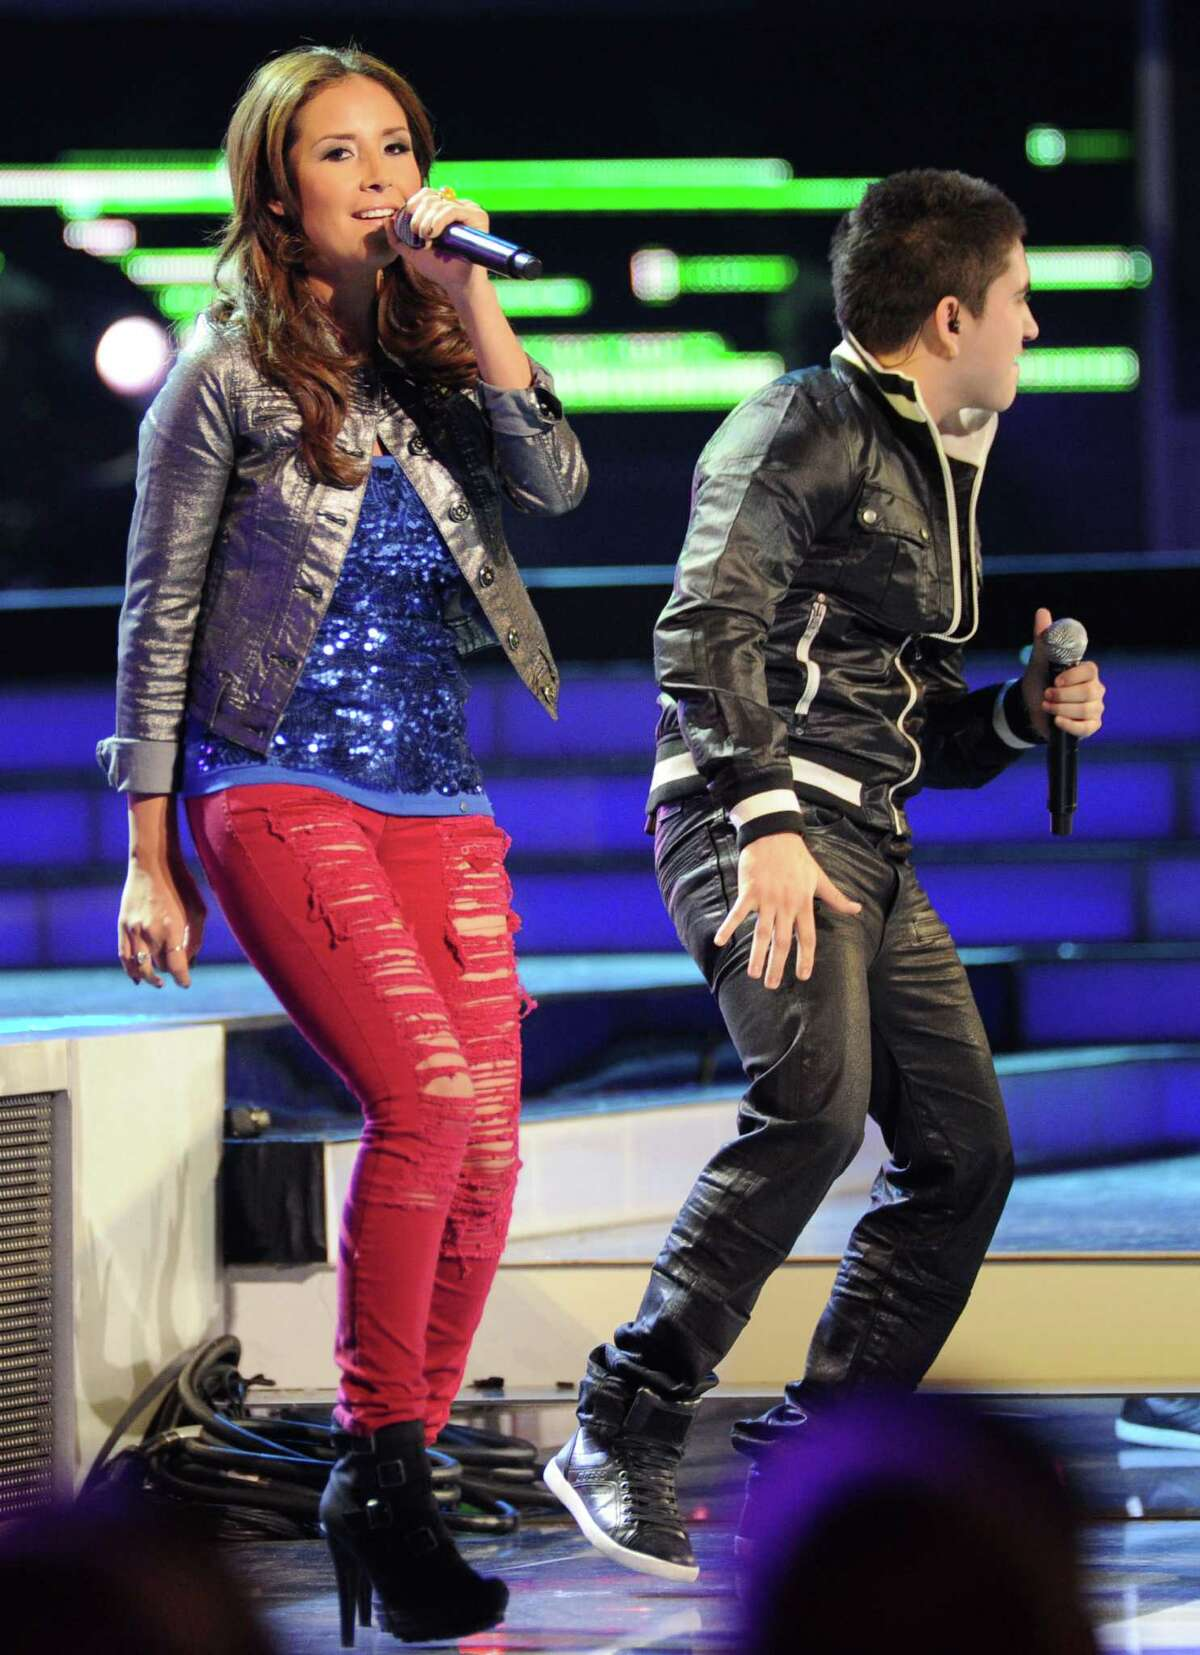 America Sierra, left, and El Bebeto perform at the 13th Annual Latin Grammy Awards at Mandalay Bay on Thursday, Nov. 15, 2012, in Las Vegas. (Photo by Al Powers/Powers Imagery/Invision/AP)